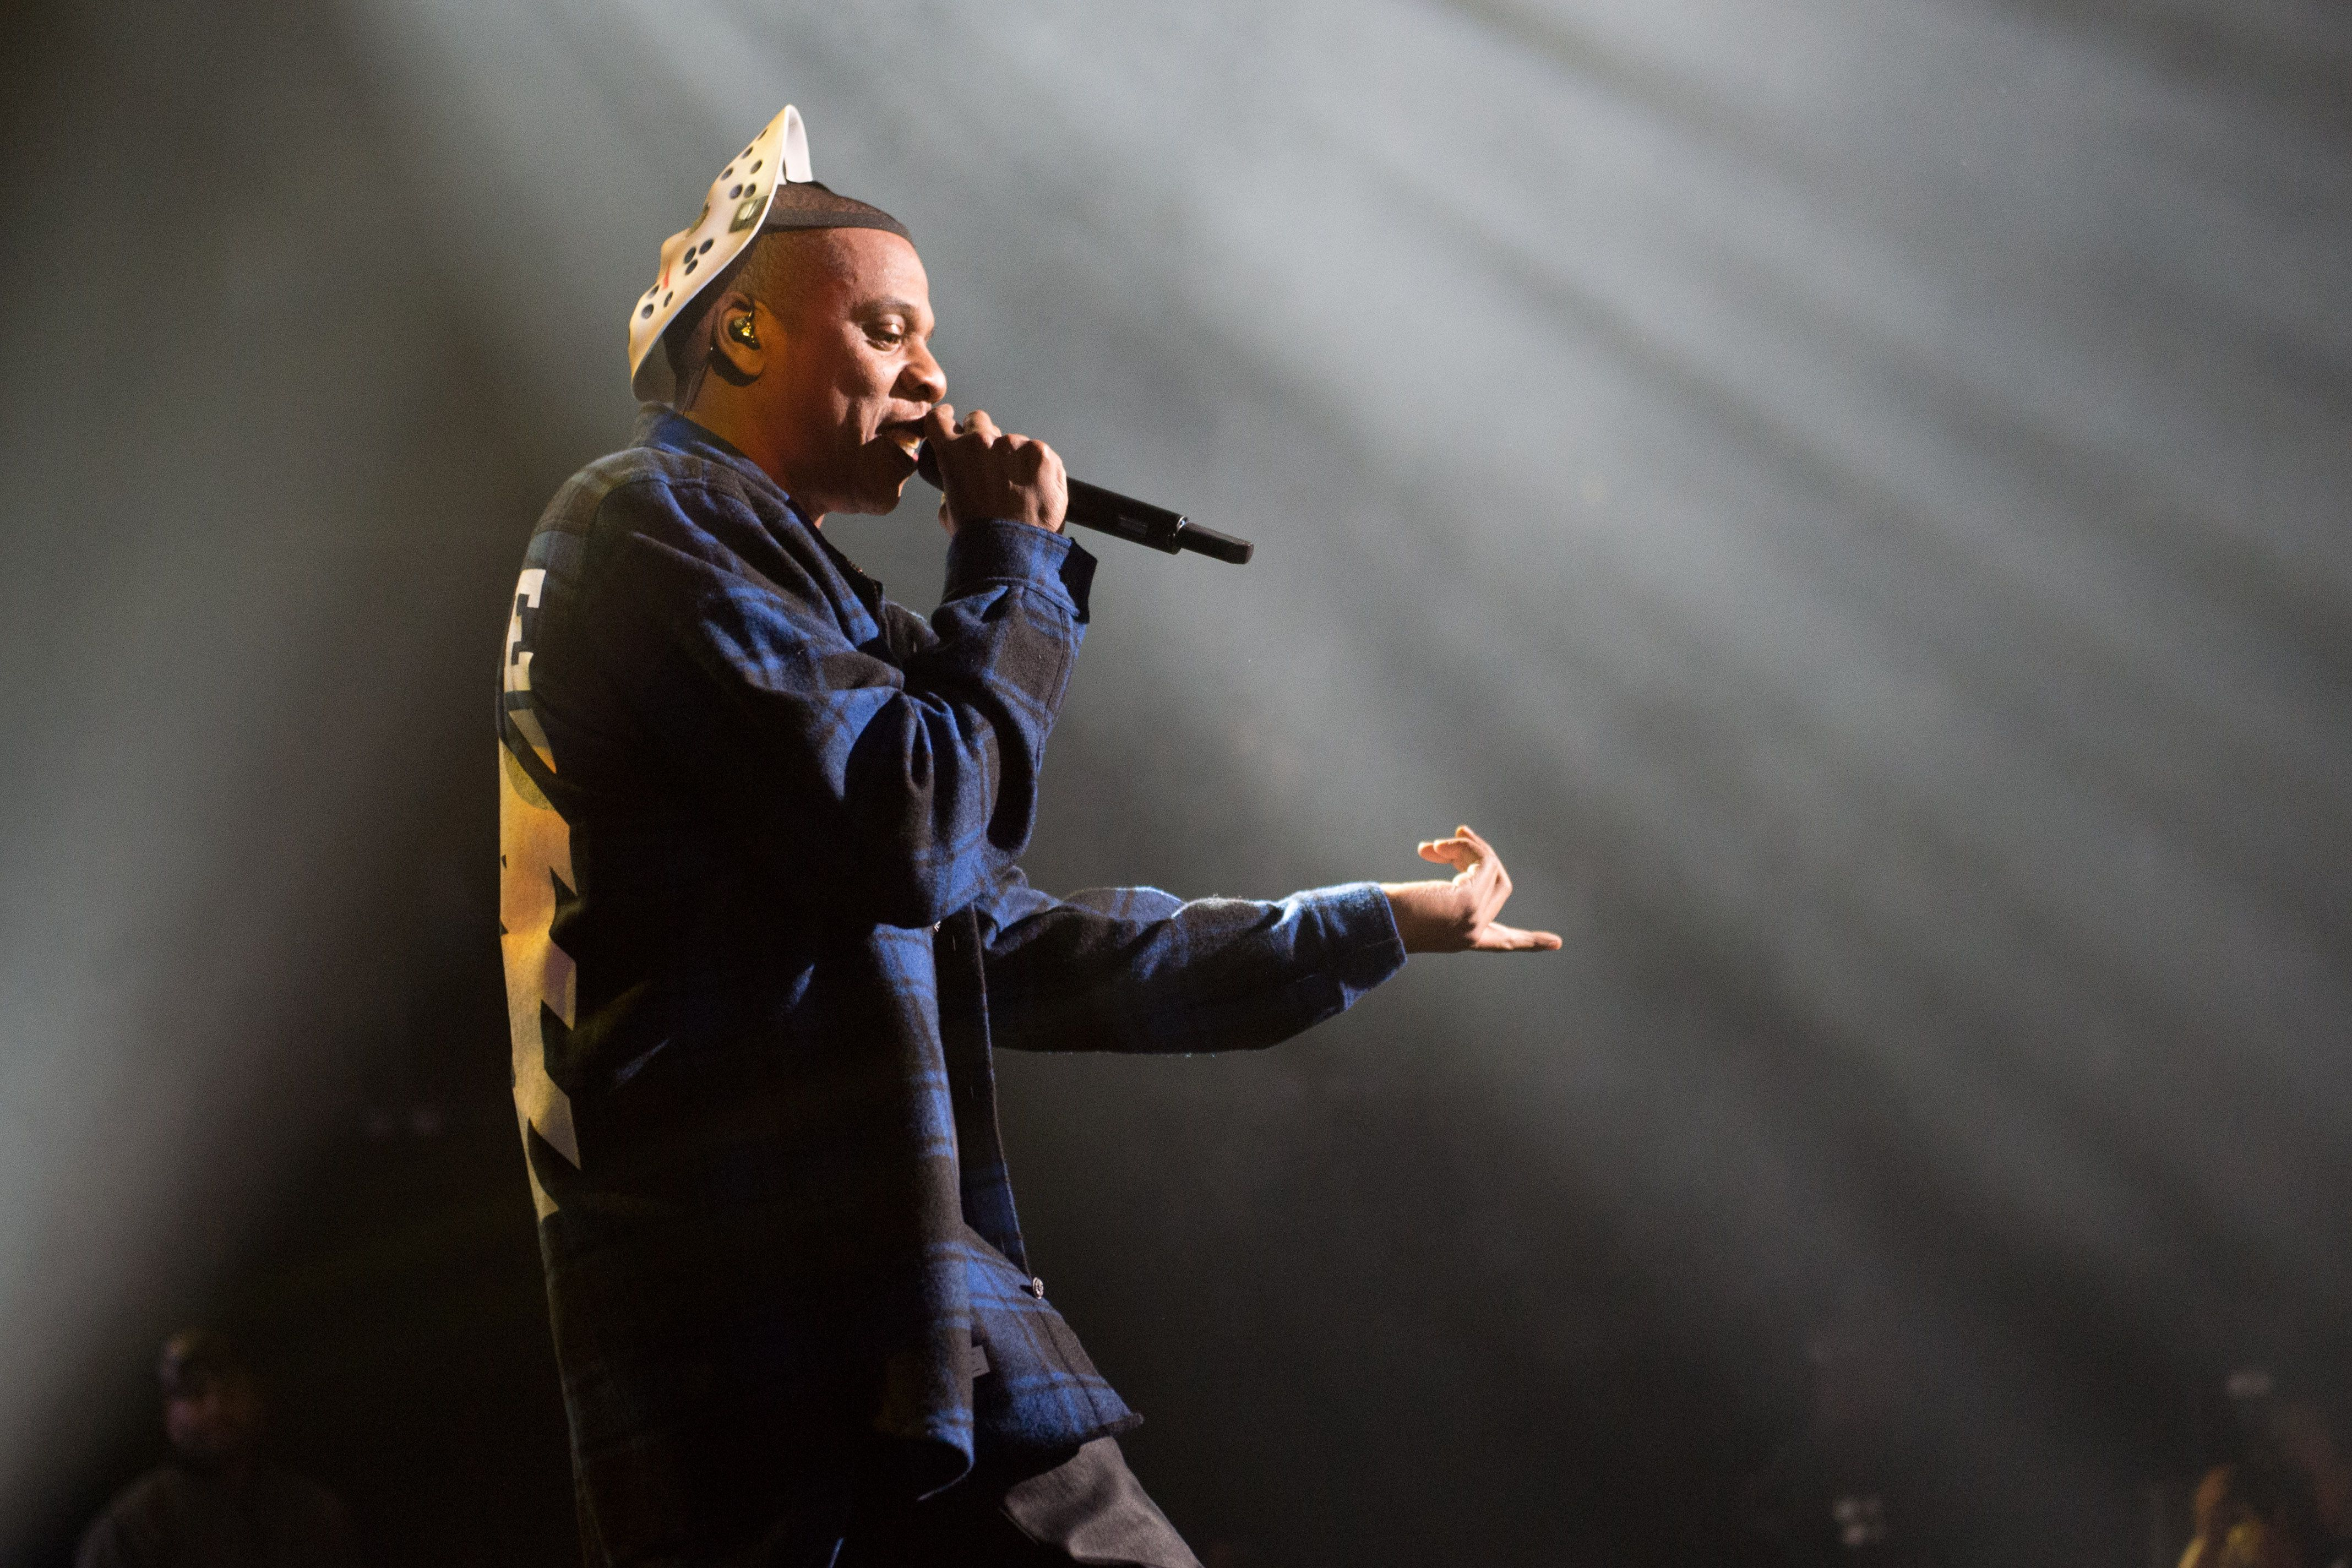 Jay Z performs at Power 105.1's Powerhouse 2014 at Barclays Center on Thursday, Oct. 30, 2014, in Brooklyn, New York. NY (Photo by Scott Roth/Invision/AP)